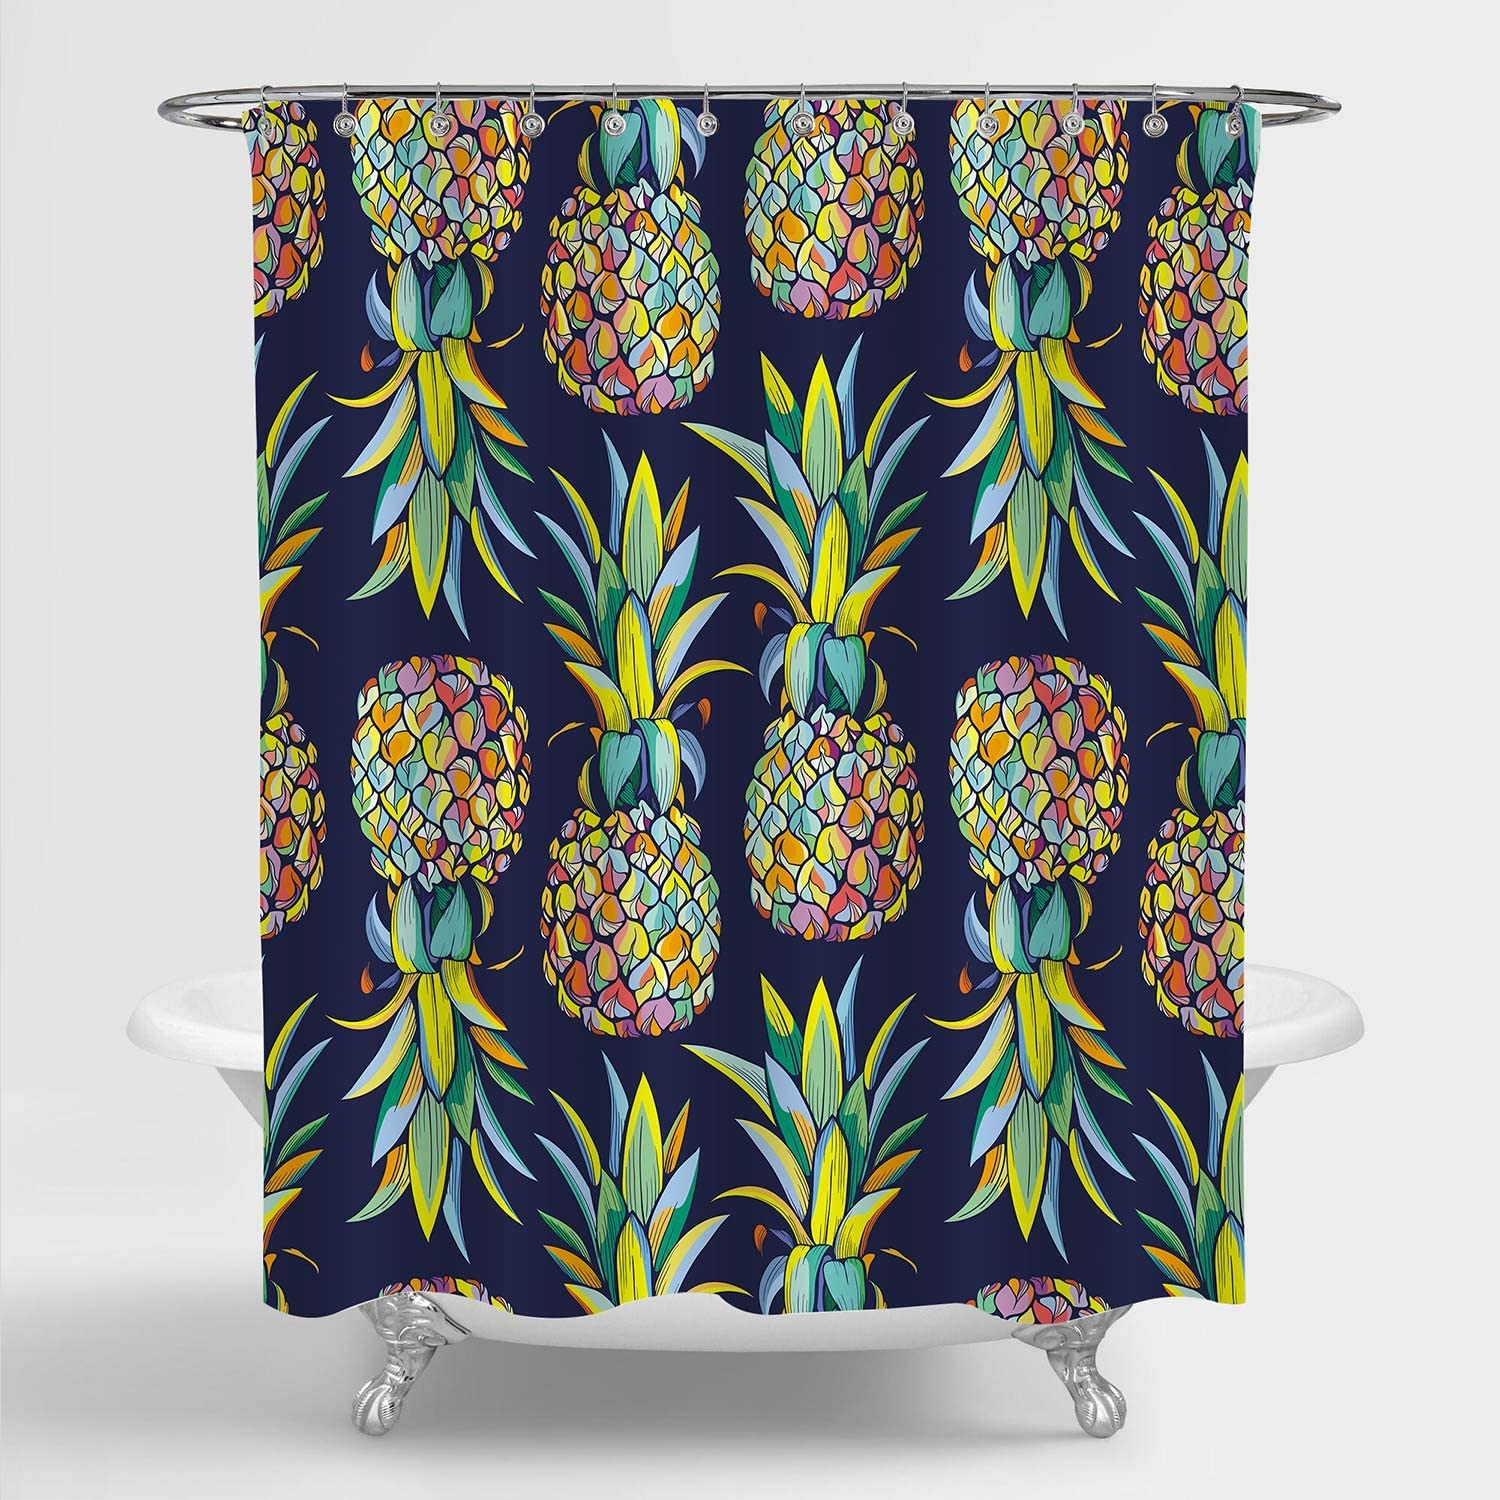 "MitoVilla Tropical Fruit Pineapple Shower Curtain for Pineapple Bathroom Decor, Aloha Jungle Plant Bathroom Accessories, Pineapple Gifts for Women, Men, Kids and Girls, Colorful, 72"" W x 72"" L"